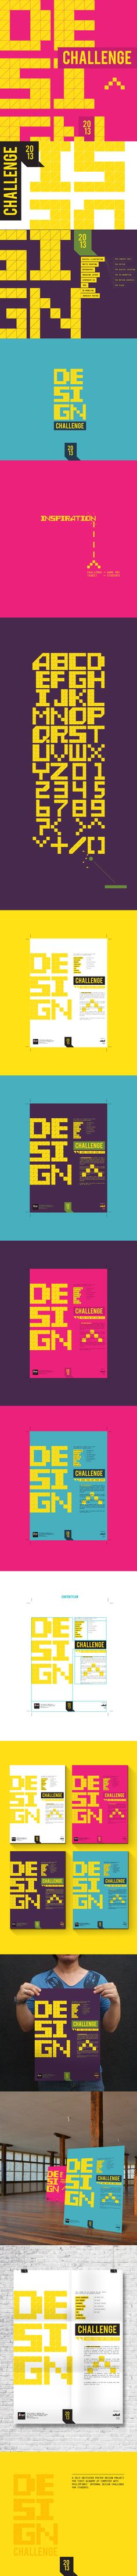 Poster design challenge - Poster Design Project Proposal For First Academy Of Computer Arts Philippines Internal Design Challenge For Their Students